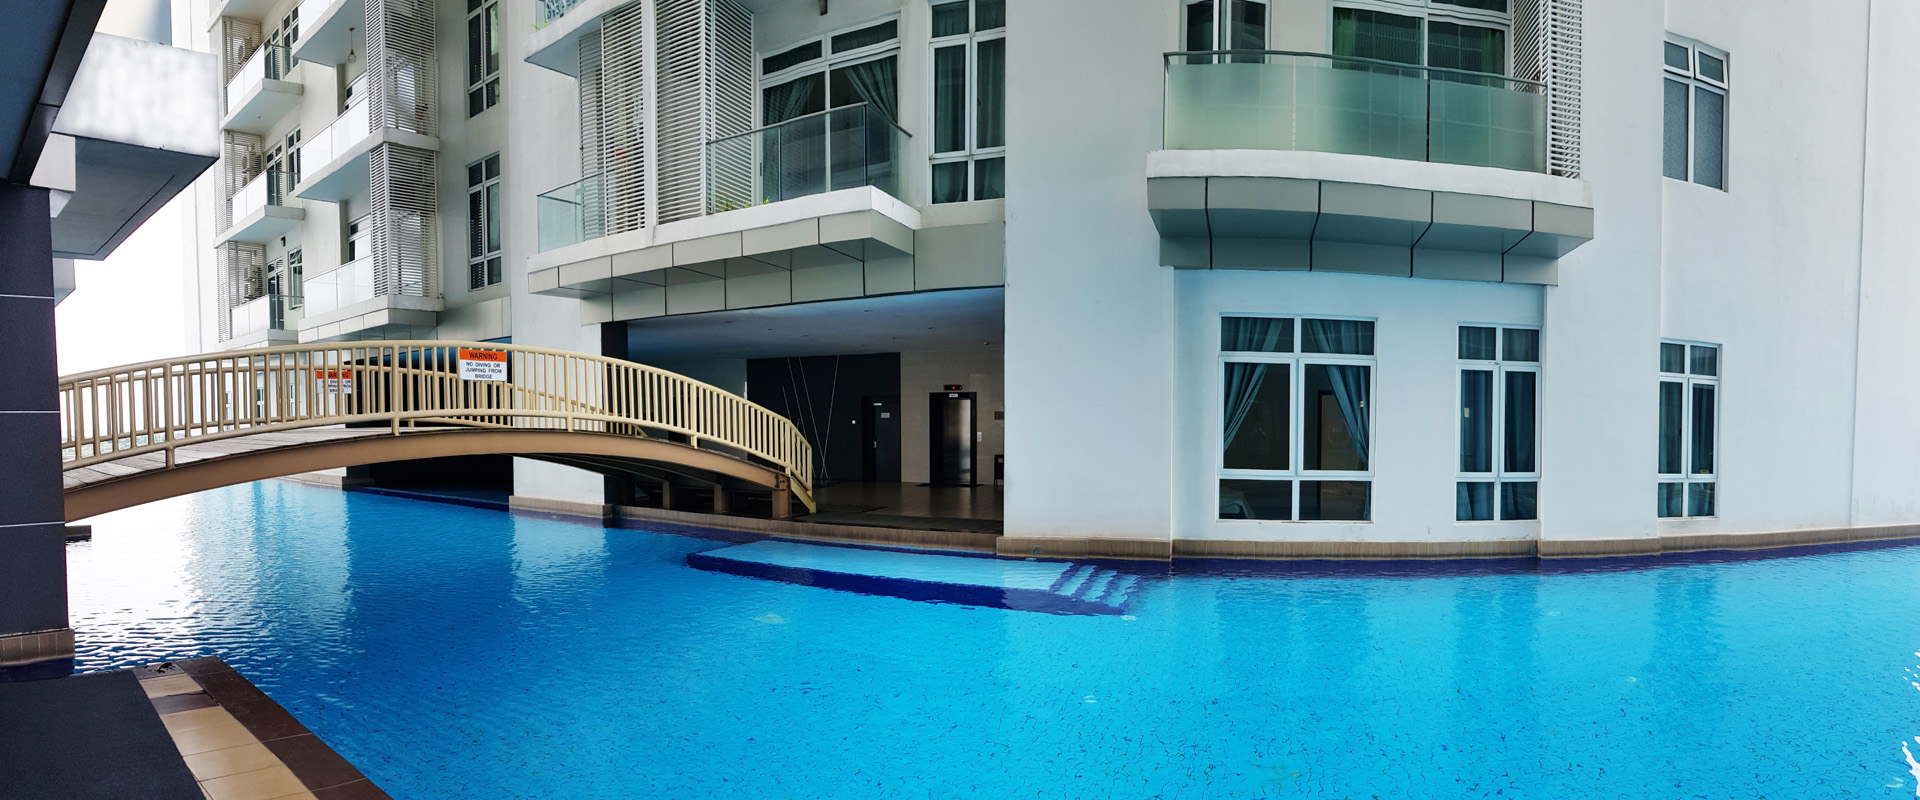 KSL Hotel & Resort - Apartment, Johor Bahru City Centre